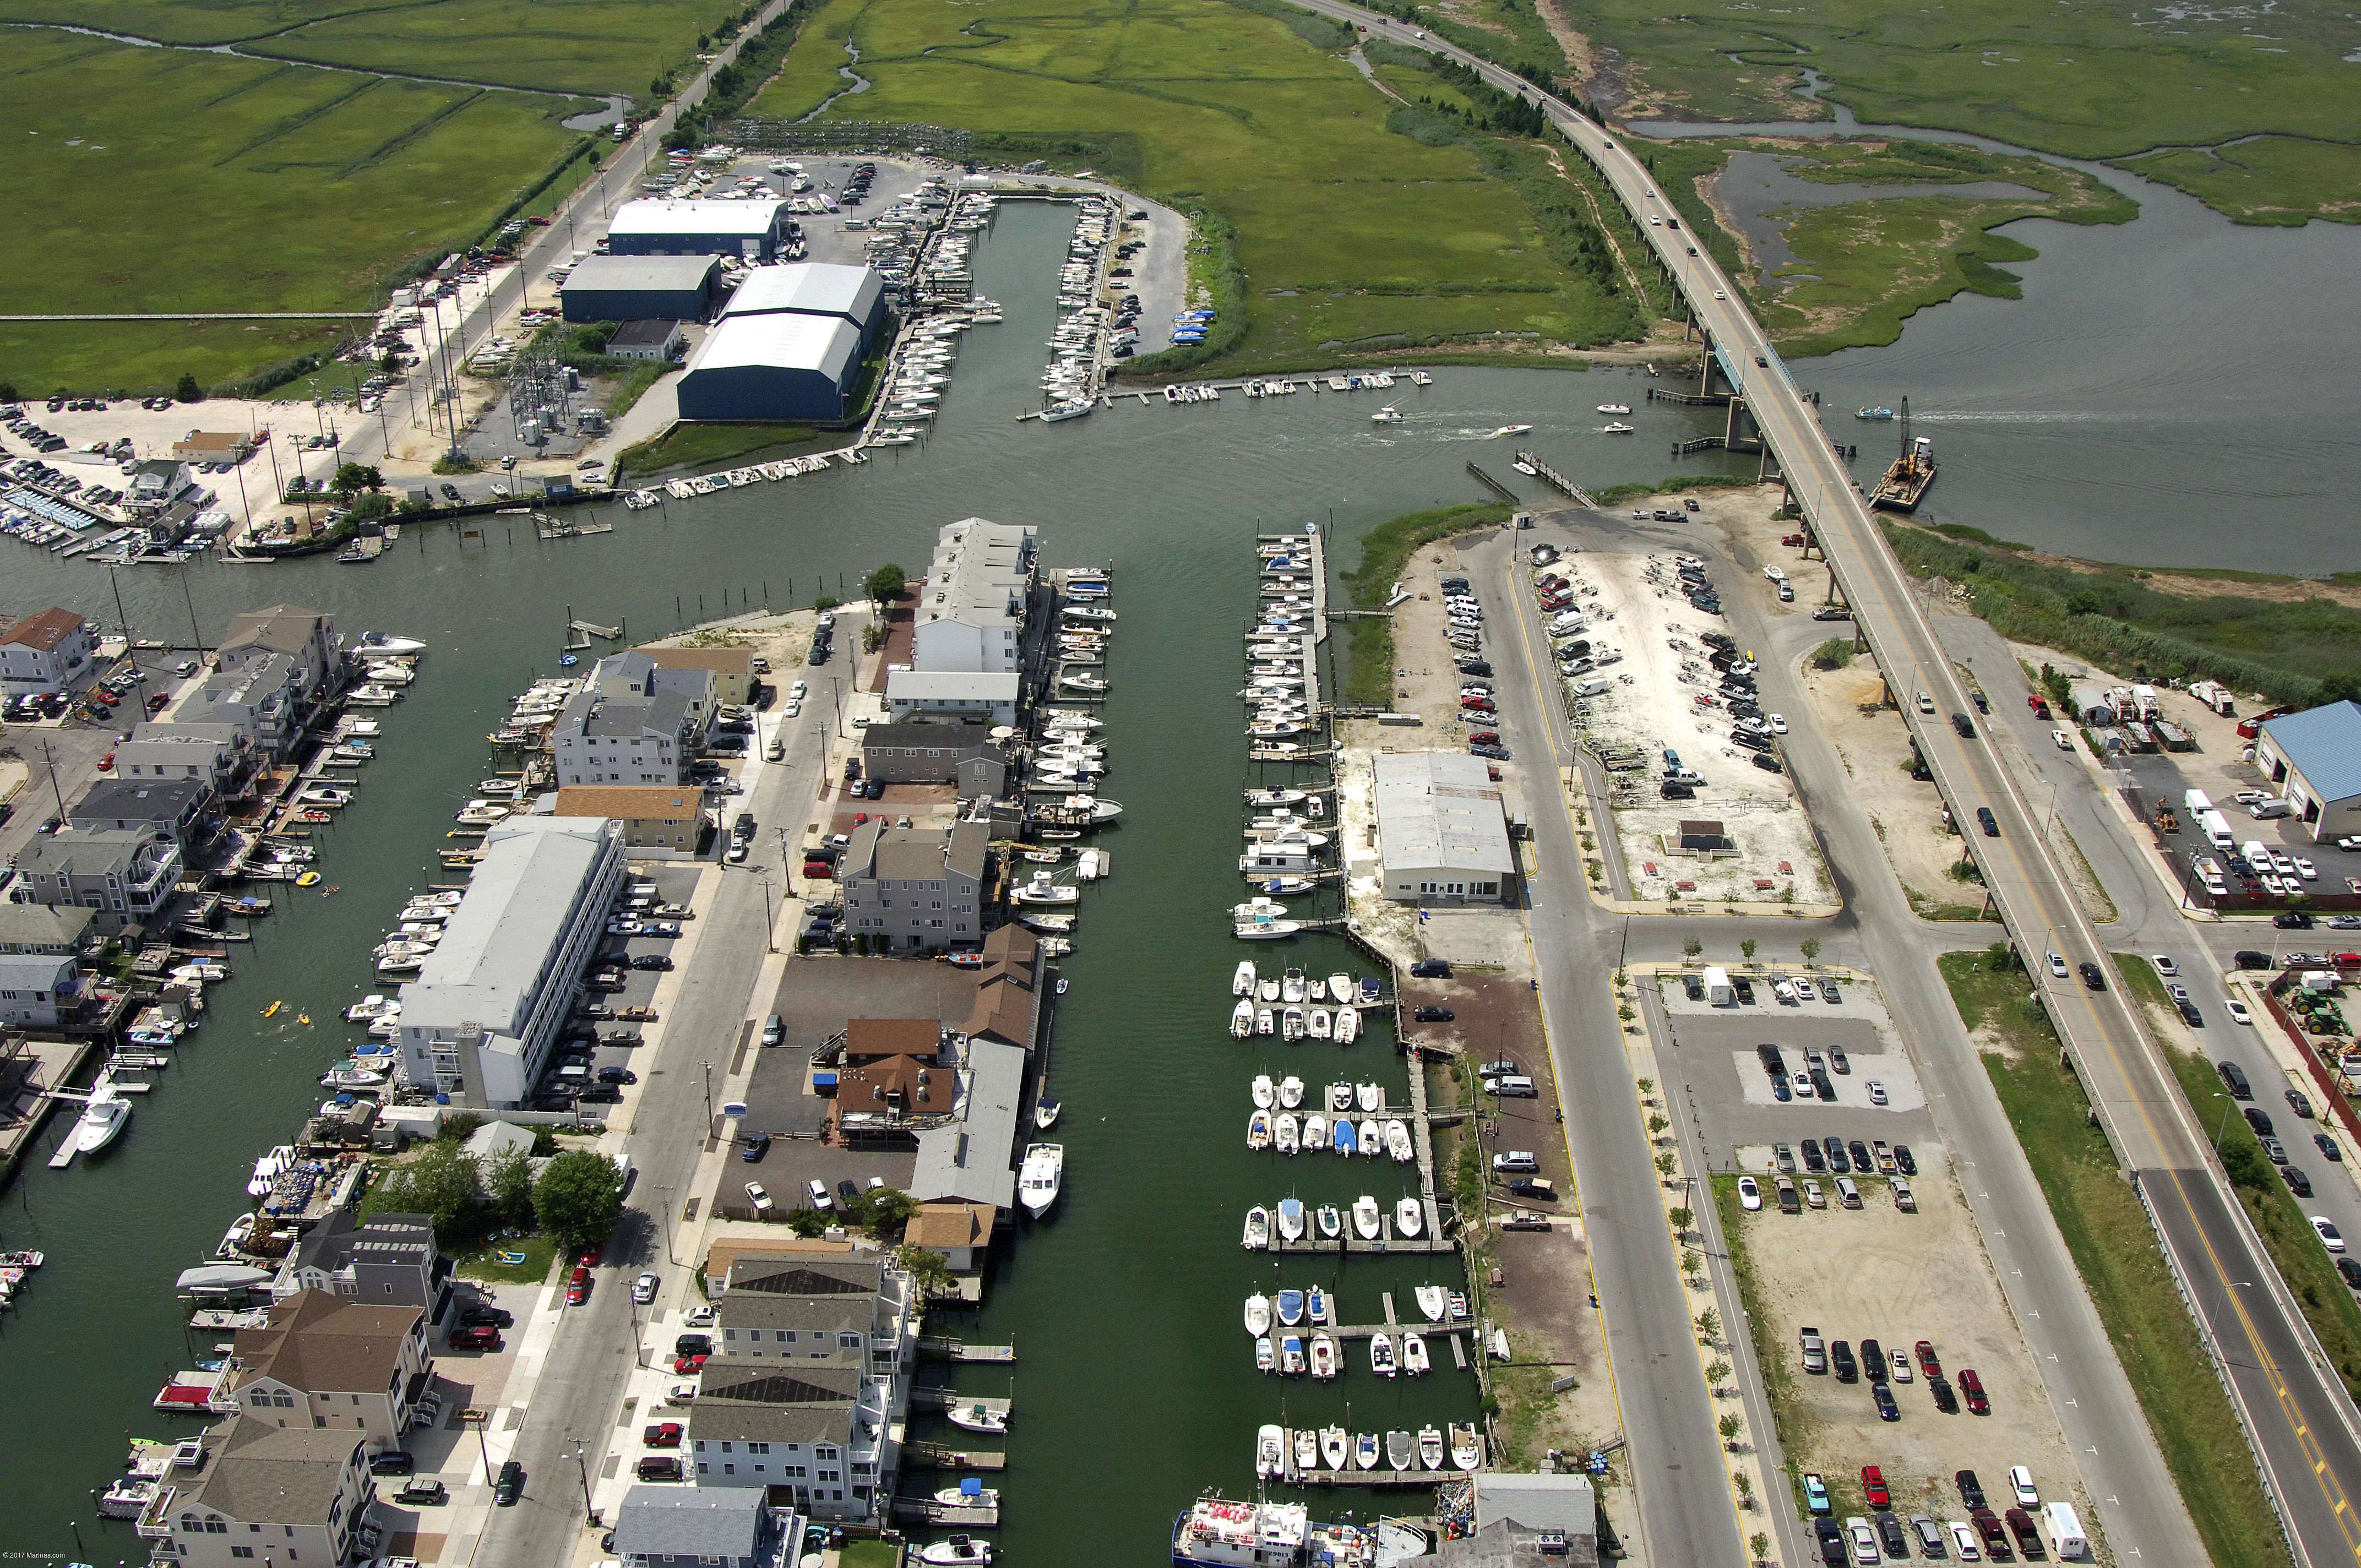 sea isle city men Whether you need assistance with pro bono divorce help or divorce representation for men, many divorce attorneys near sea isle city have the experience to fight for your case.